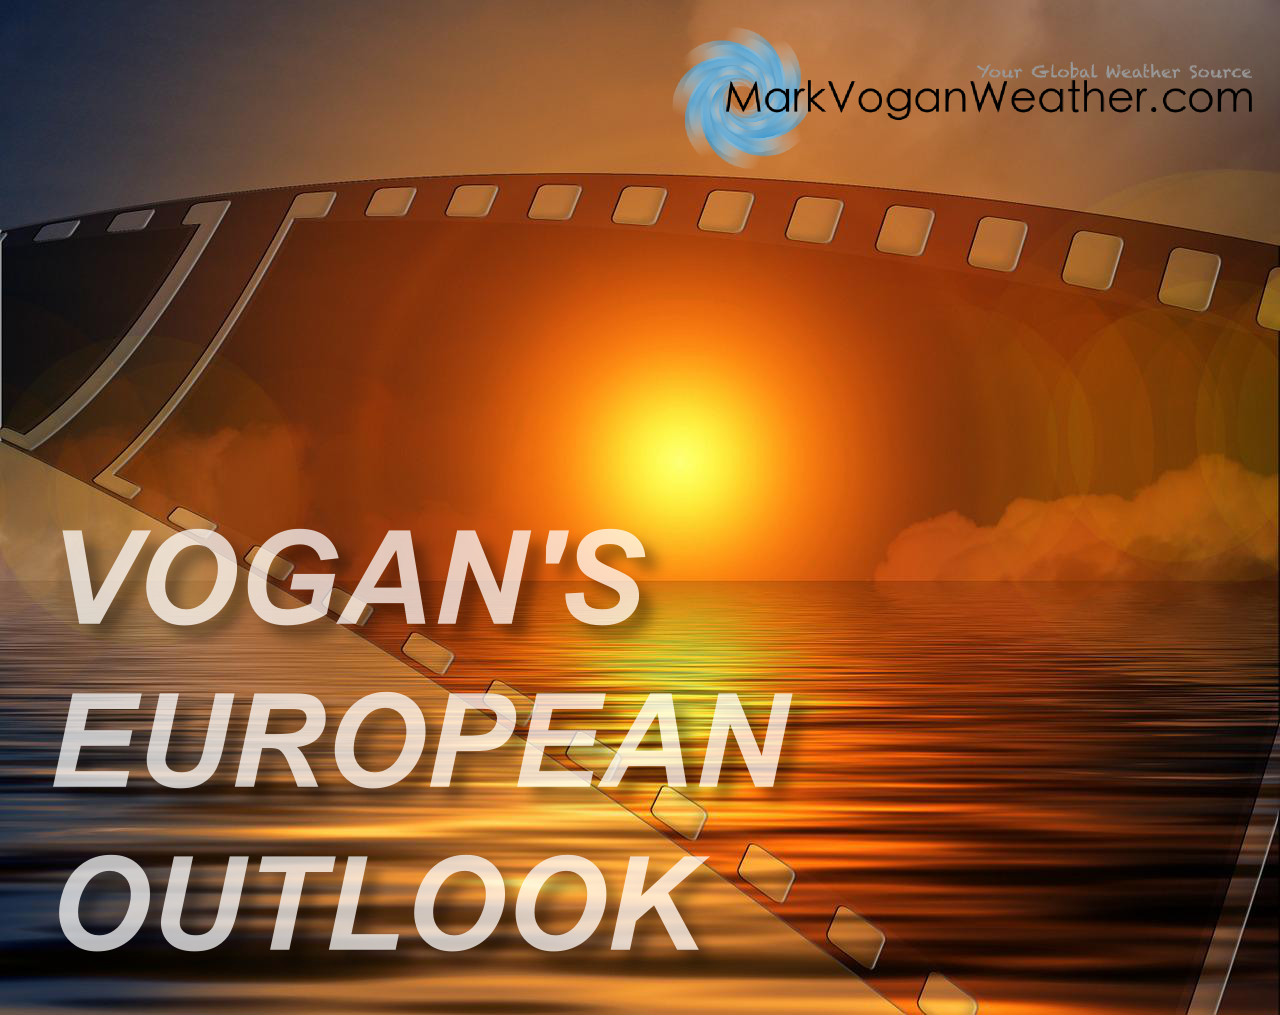 WED 25 JUNE: VOGAN'S EUROPEAN OUTLOOK